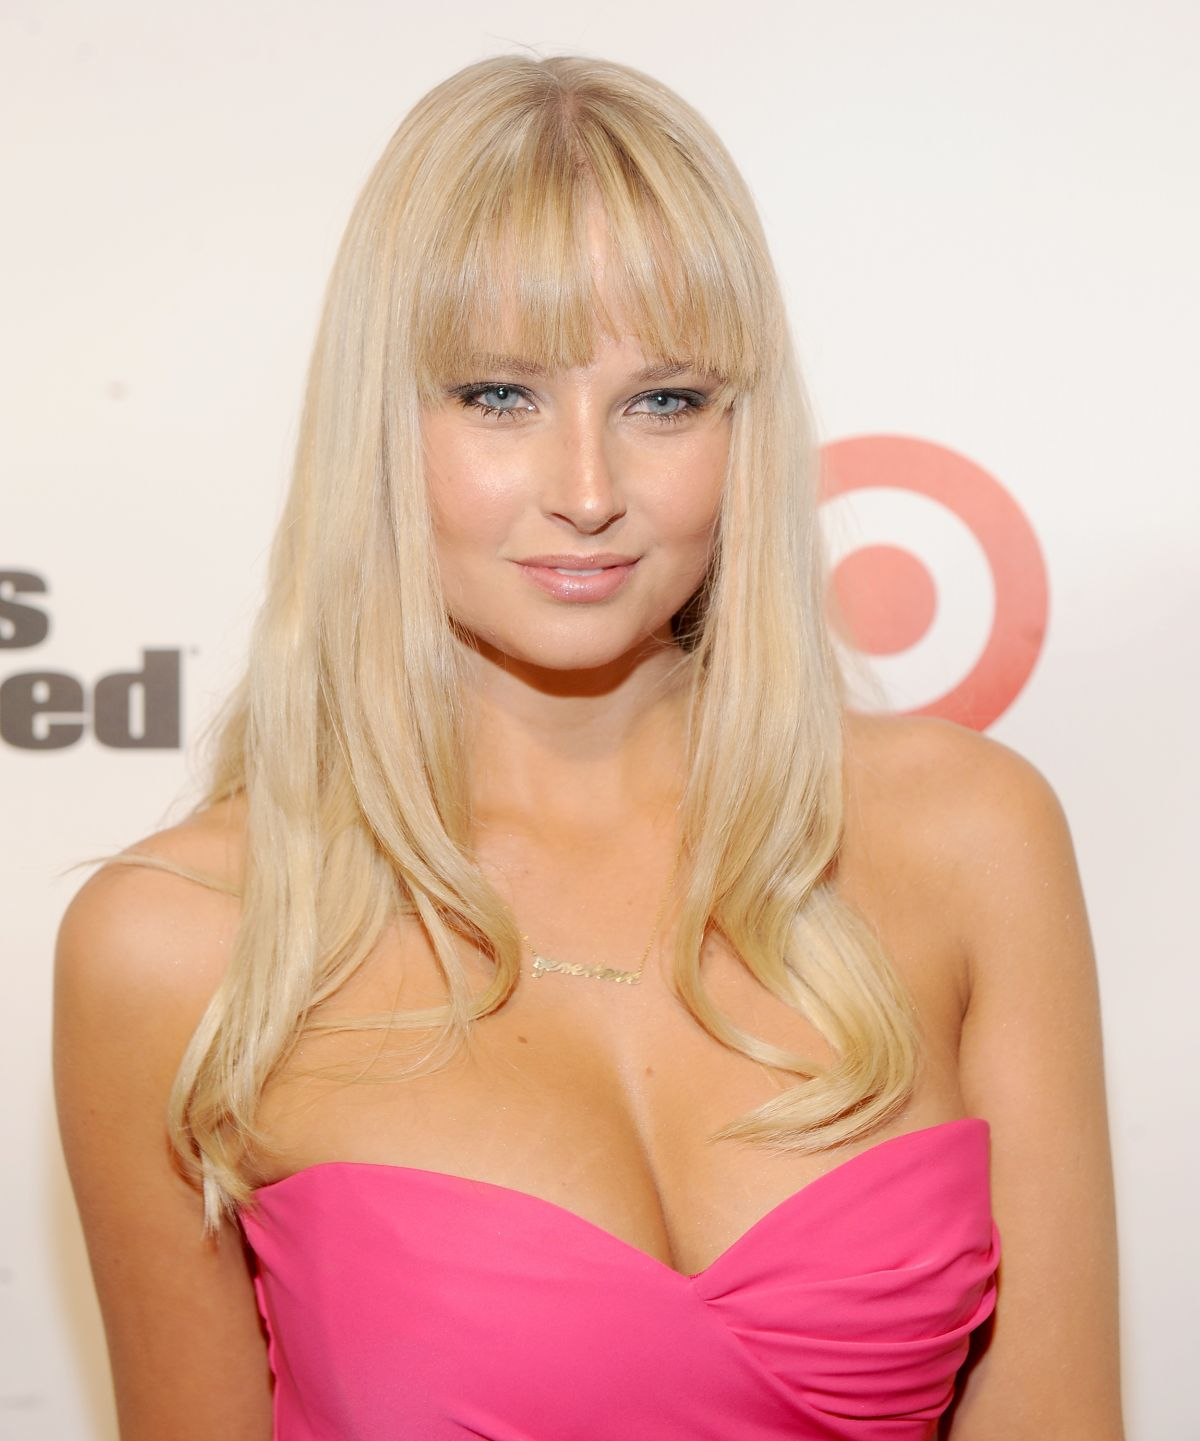 Camille Kostek Outtakes: Genevieve Morton At 2013 Sports Illustrated Swimsuit